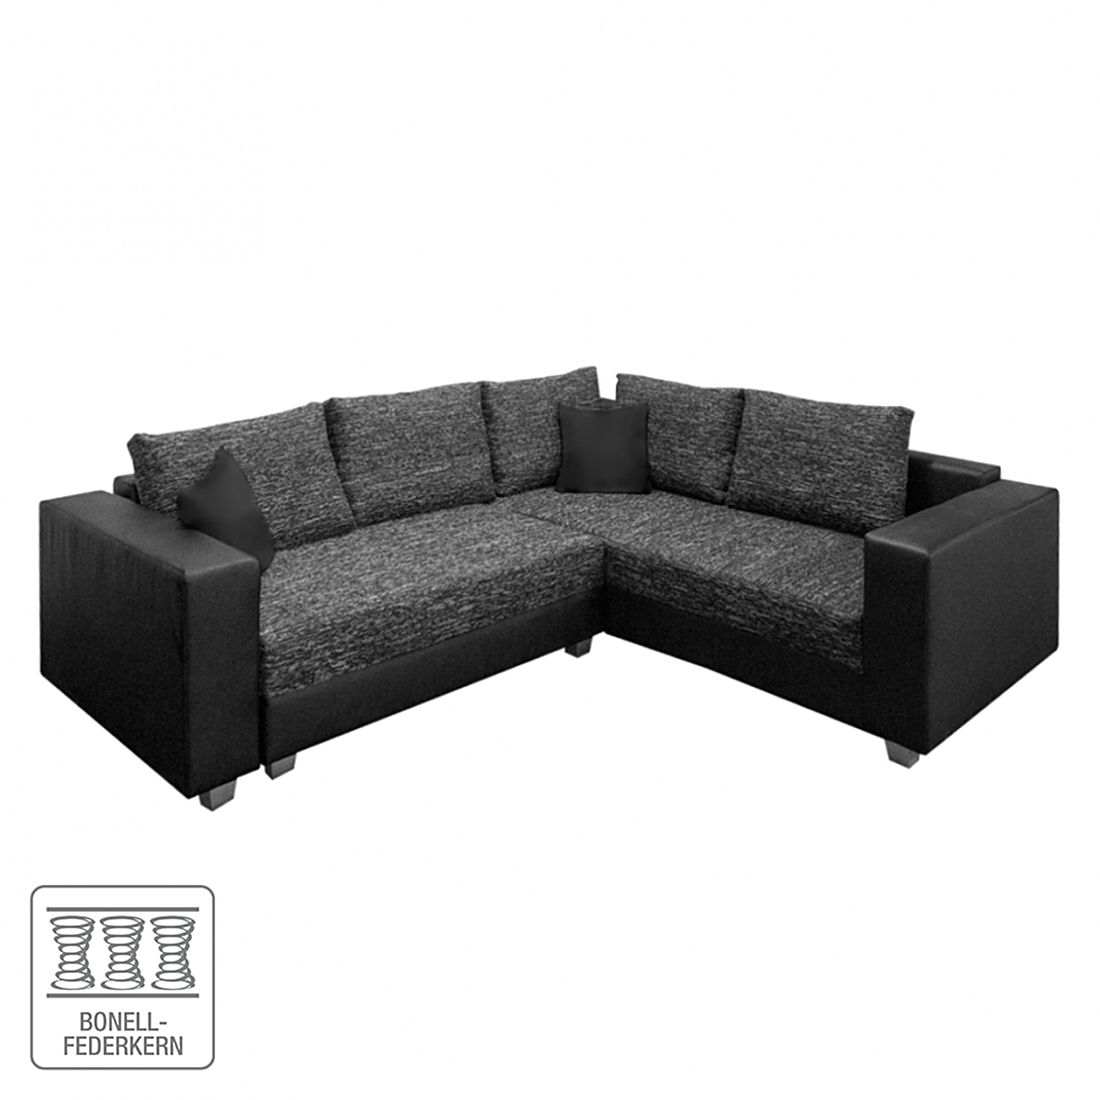 ecksofa mit schlaffunktion segm ller inspirierendes design f r wohnm bel. Black Bedroom Furniture Sets. Home Design Ideas